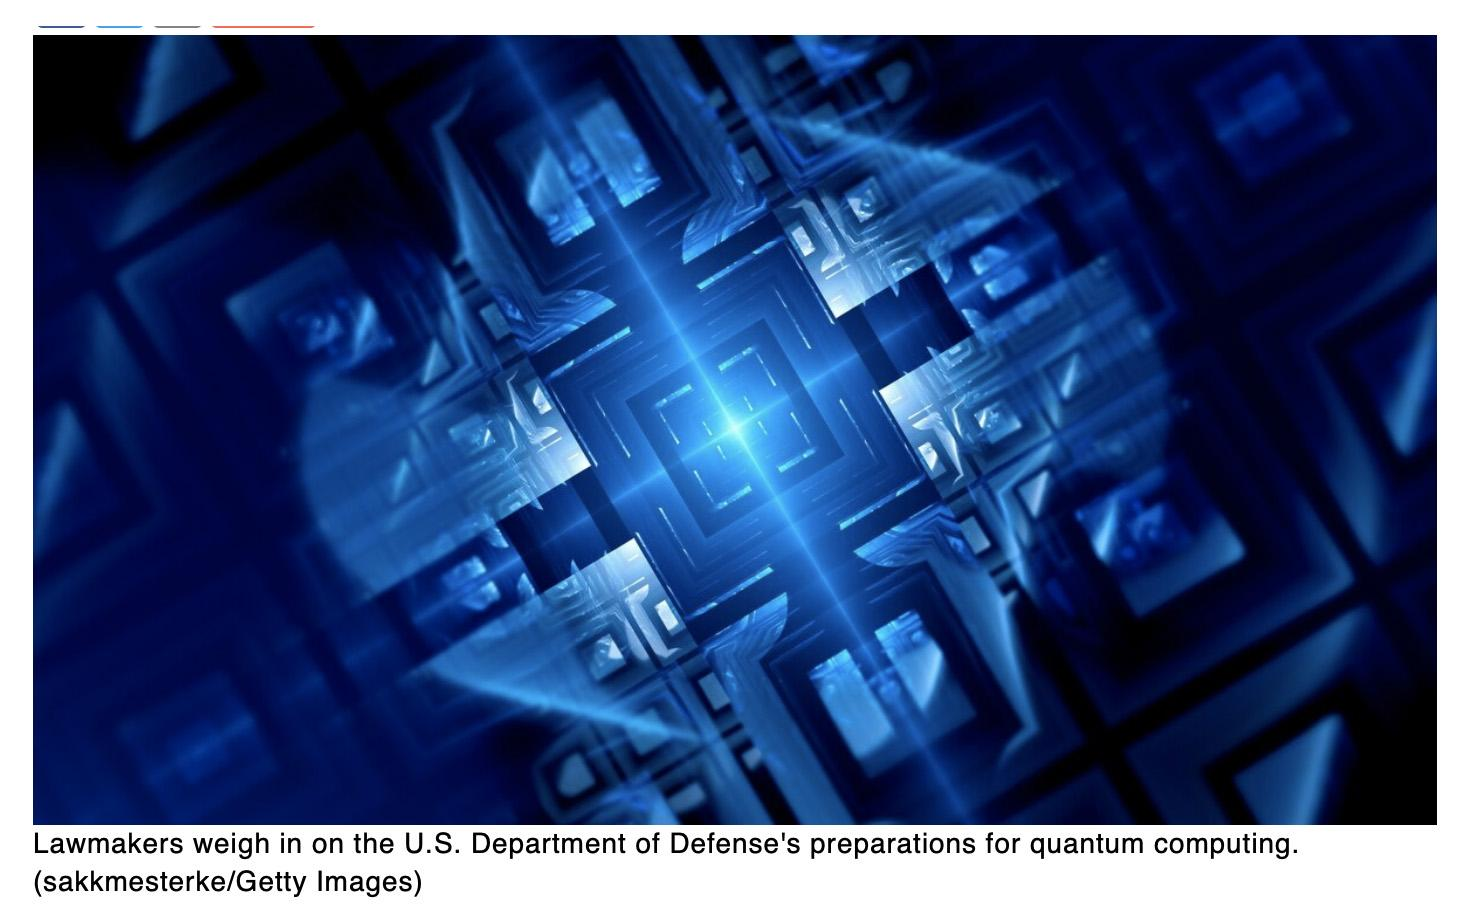 Defense Department must determine the threat from quantum computers